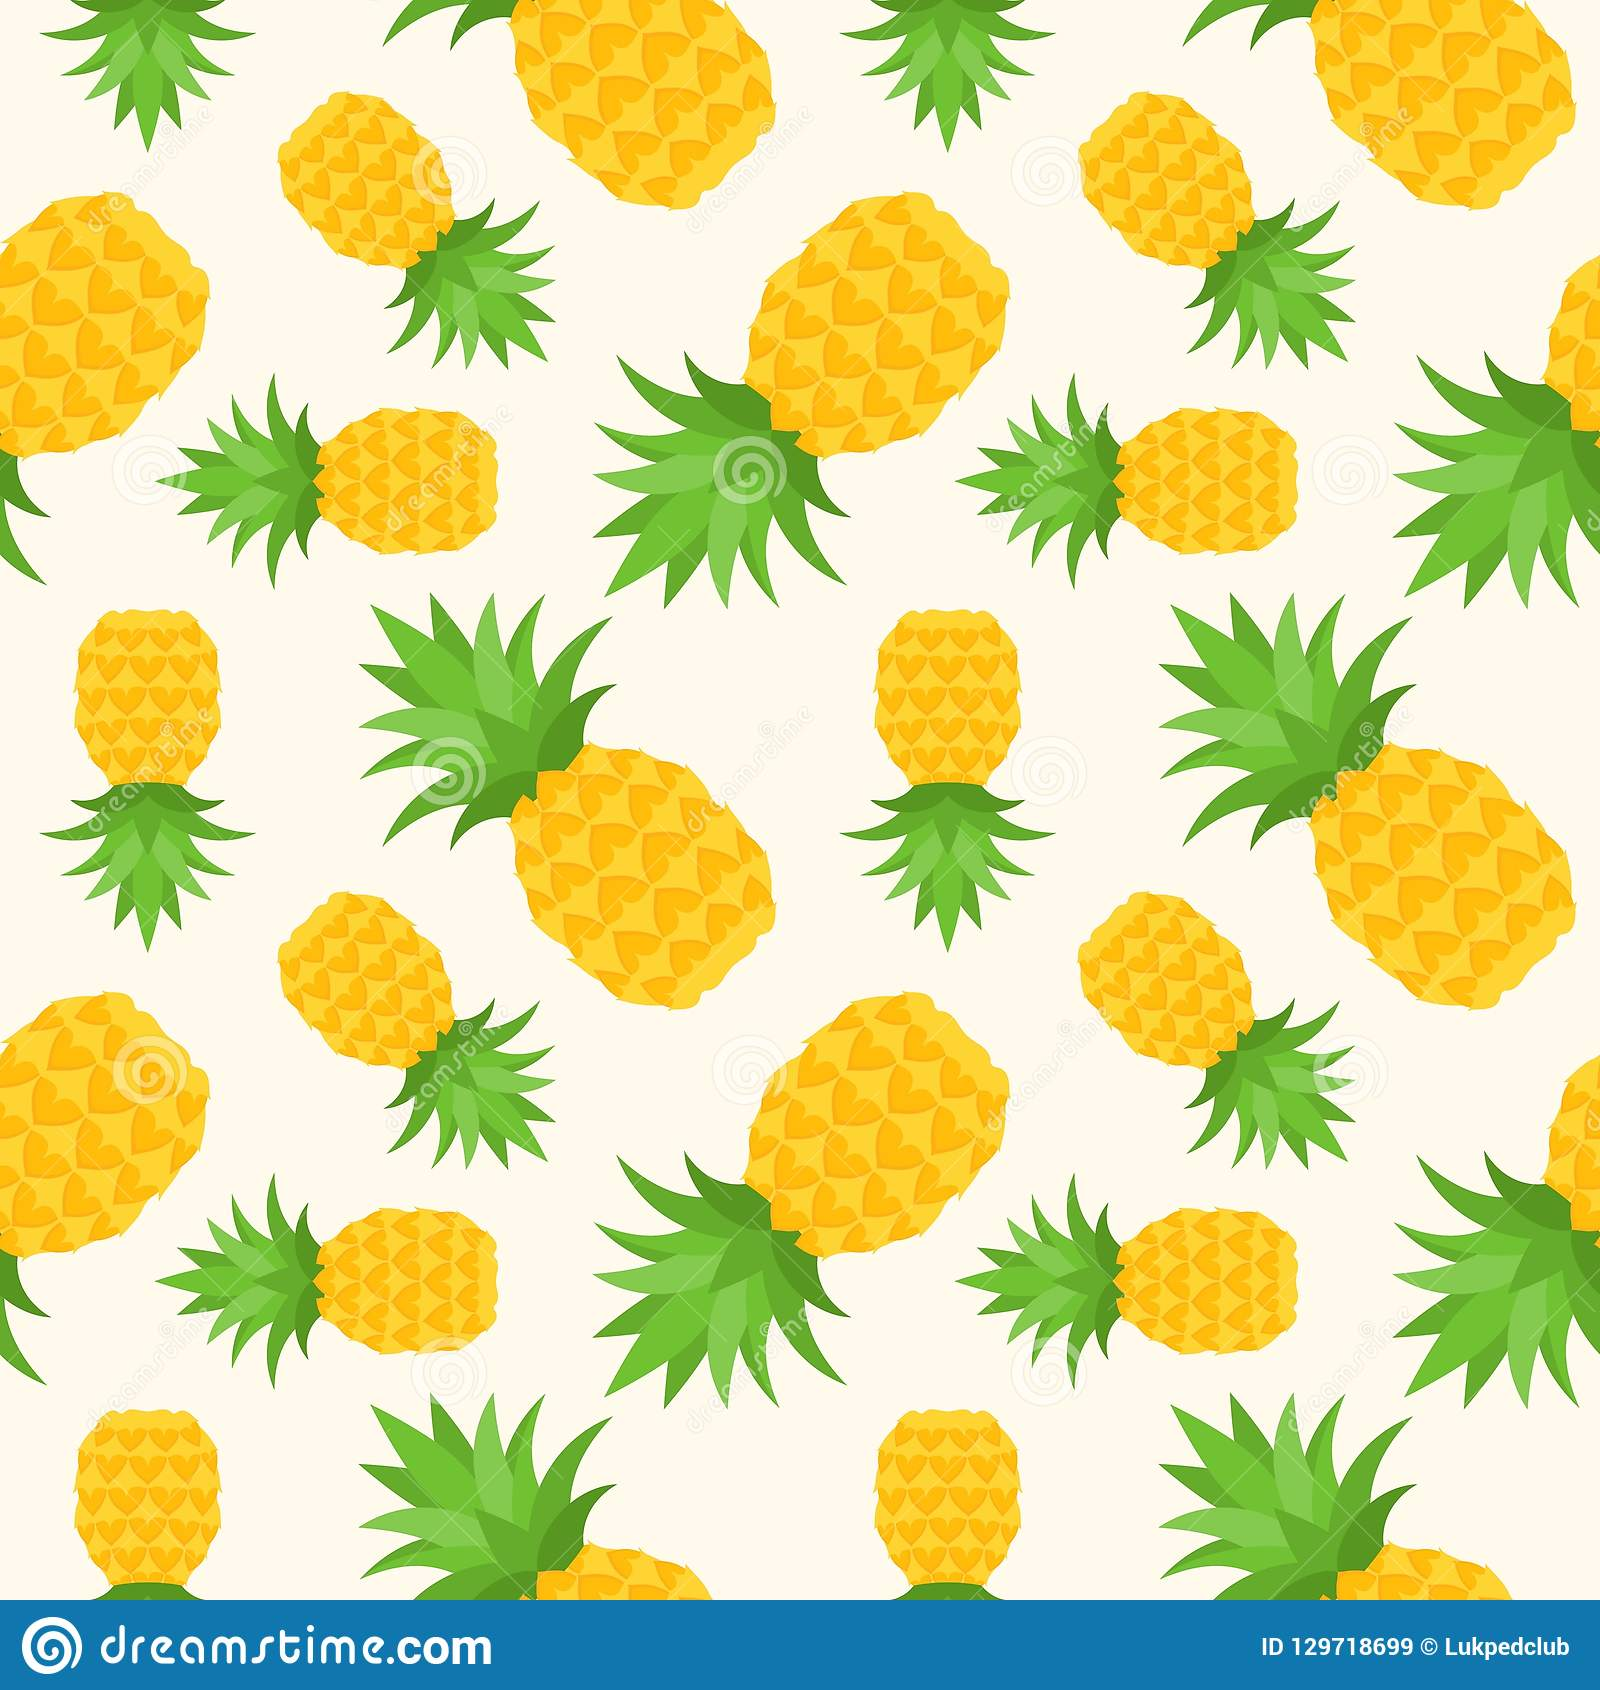 Pineapple Seamless Pattern, Flat Design Summer And Tropical Fruit